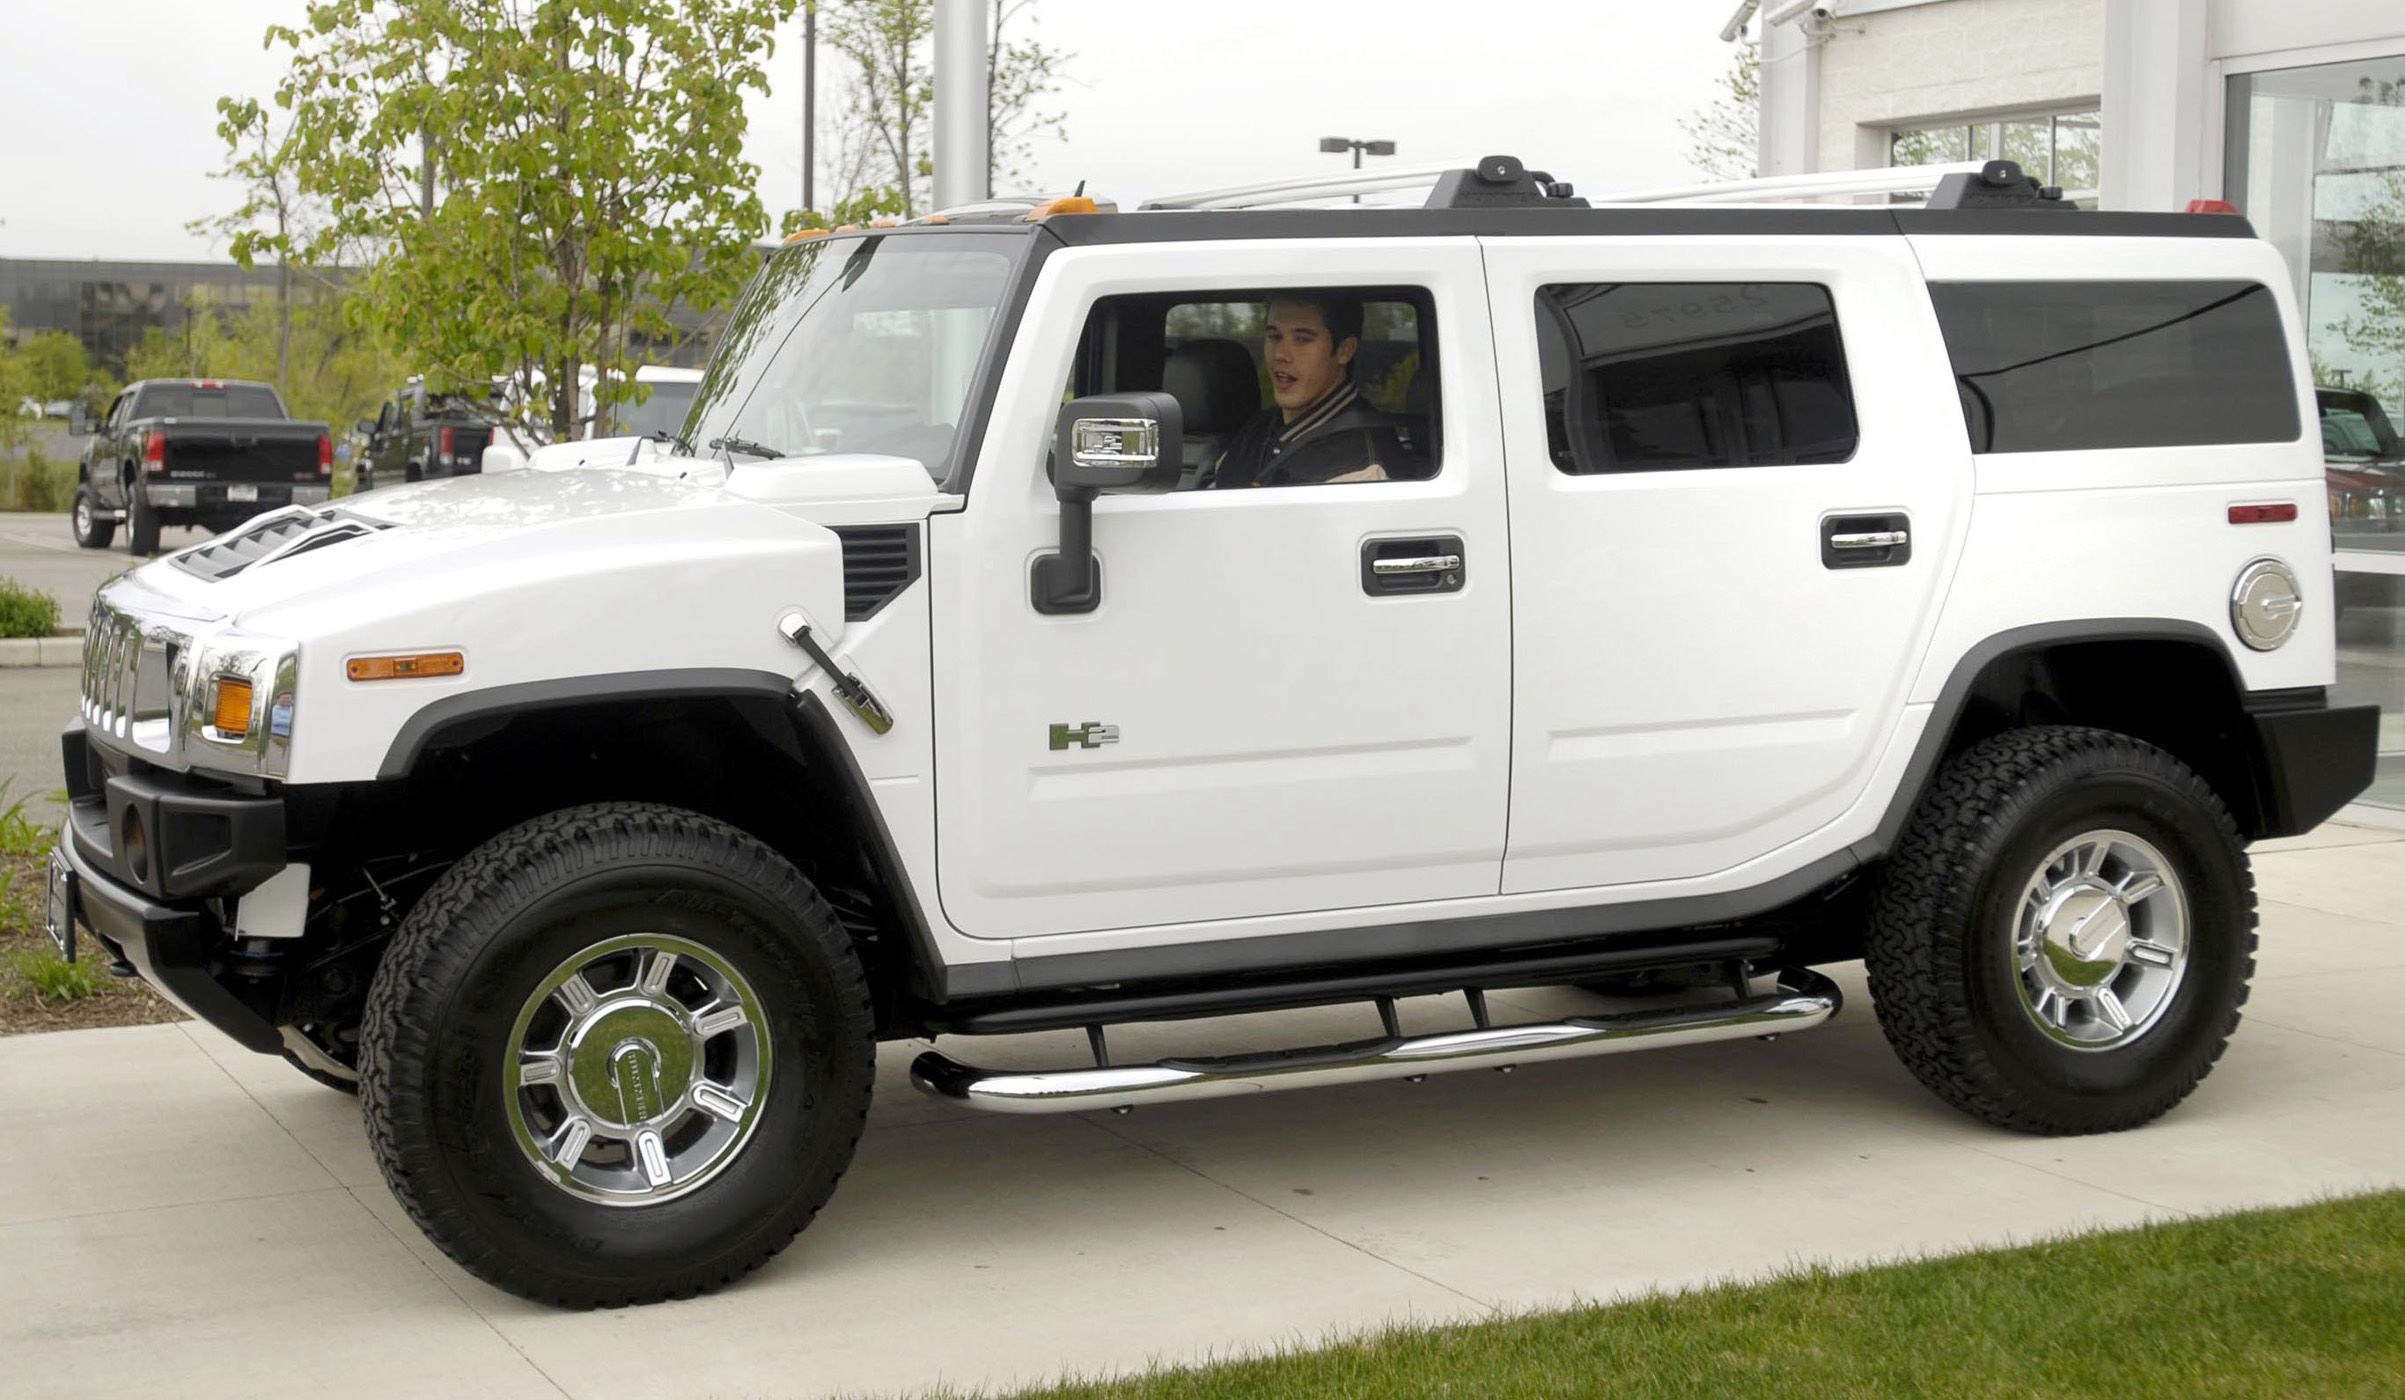 In my 5th grade year book I put that I d have a Hummer ways